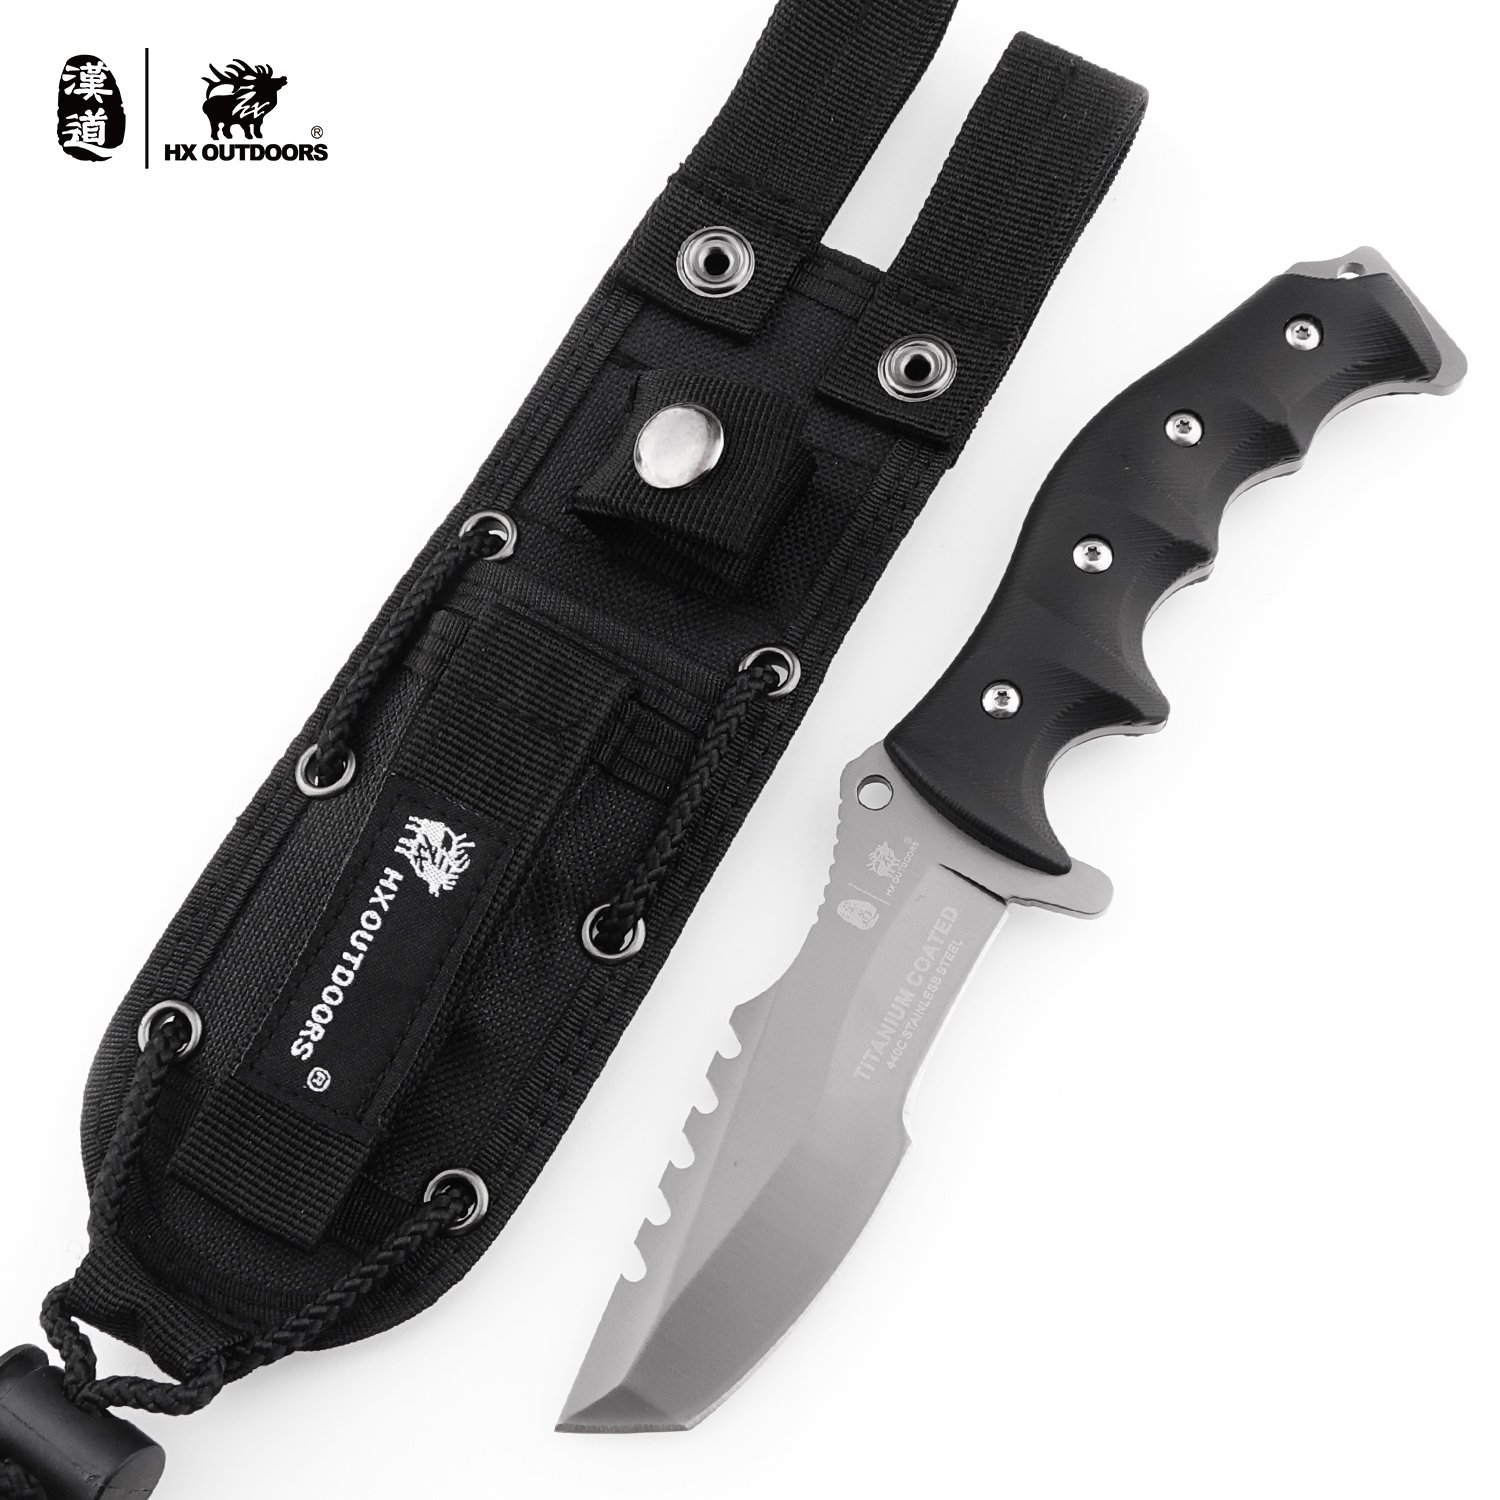 HX OUTDOORS Army Survival Tactical Knife Outdoor Tool Fixed-Blade Knives Camping Hiking Tools (Seal)